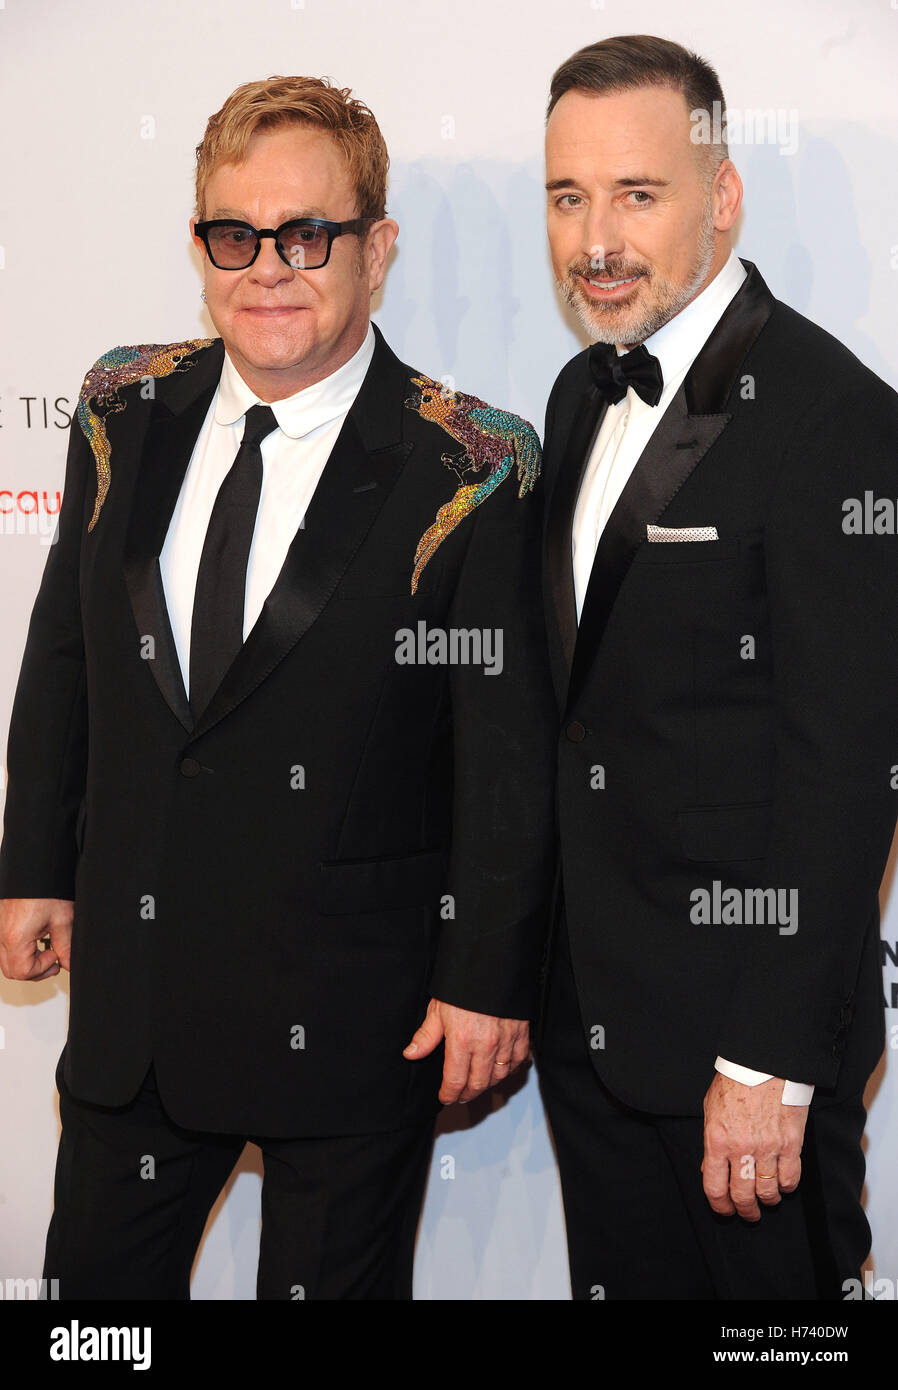 Nueva York, NY, EUA. 02Nd Nov, 2016. Sir Elton John y David amueblar asistir 15th Annual Elton John AIDS Foundation Imagen De Stock